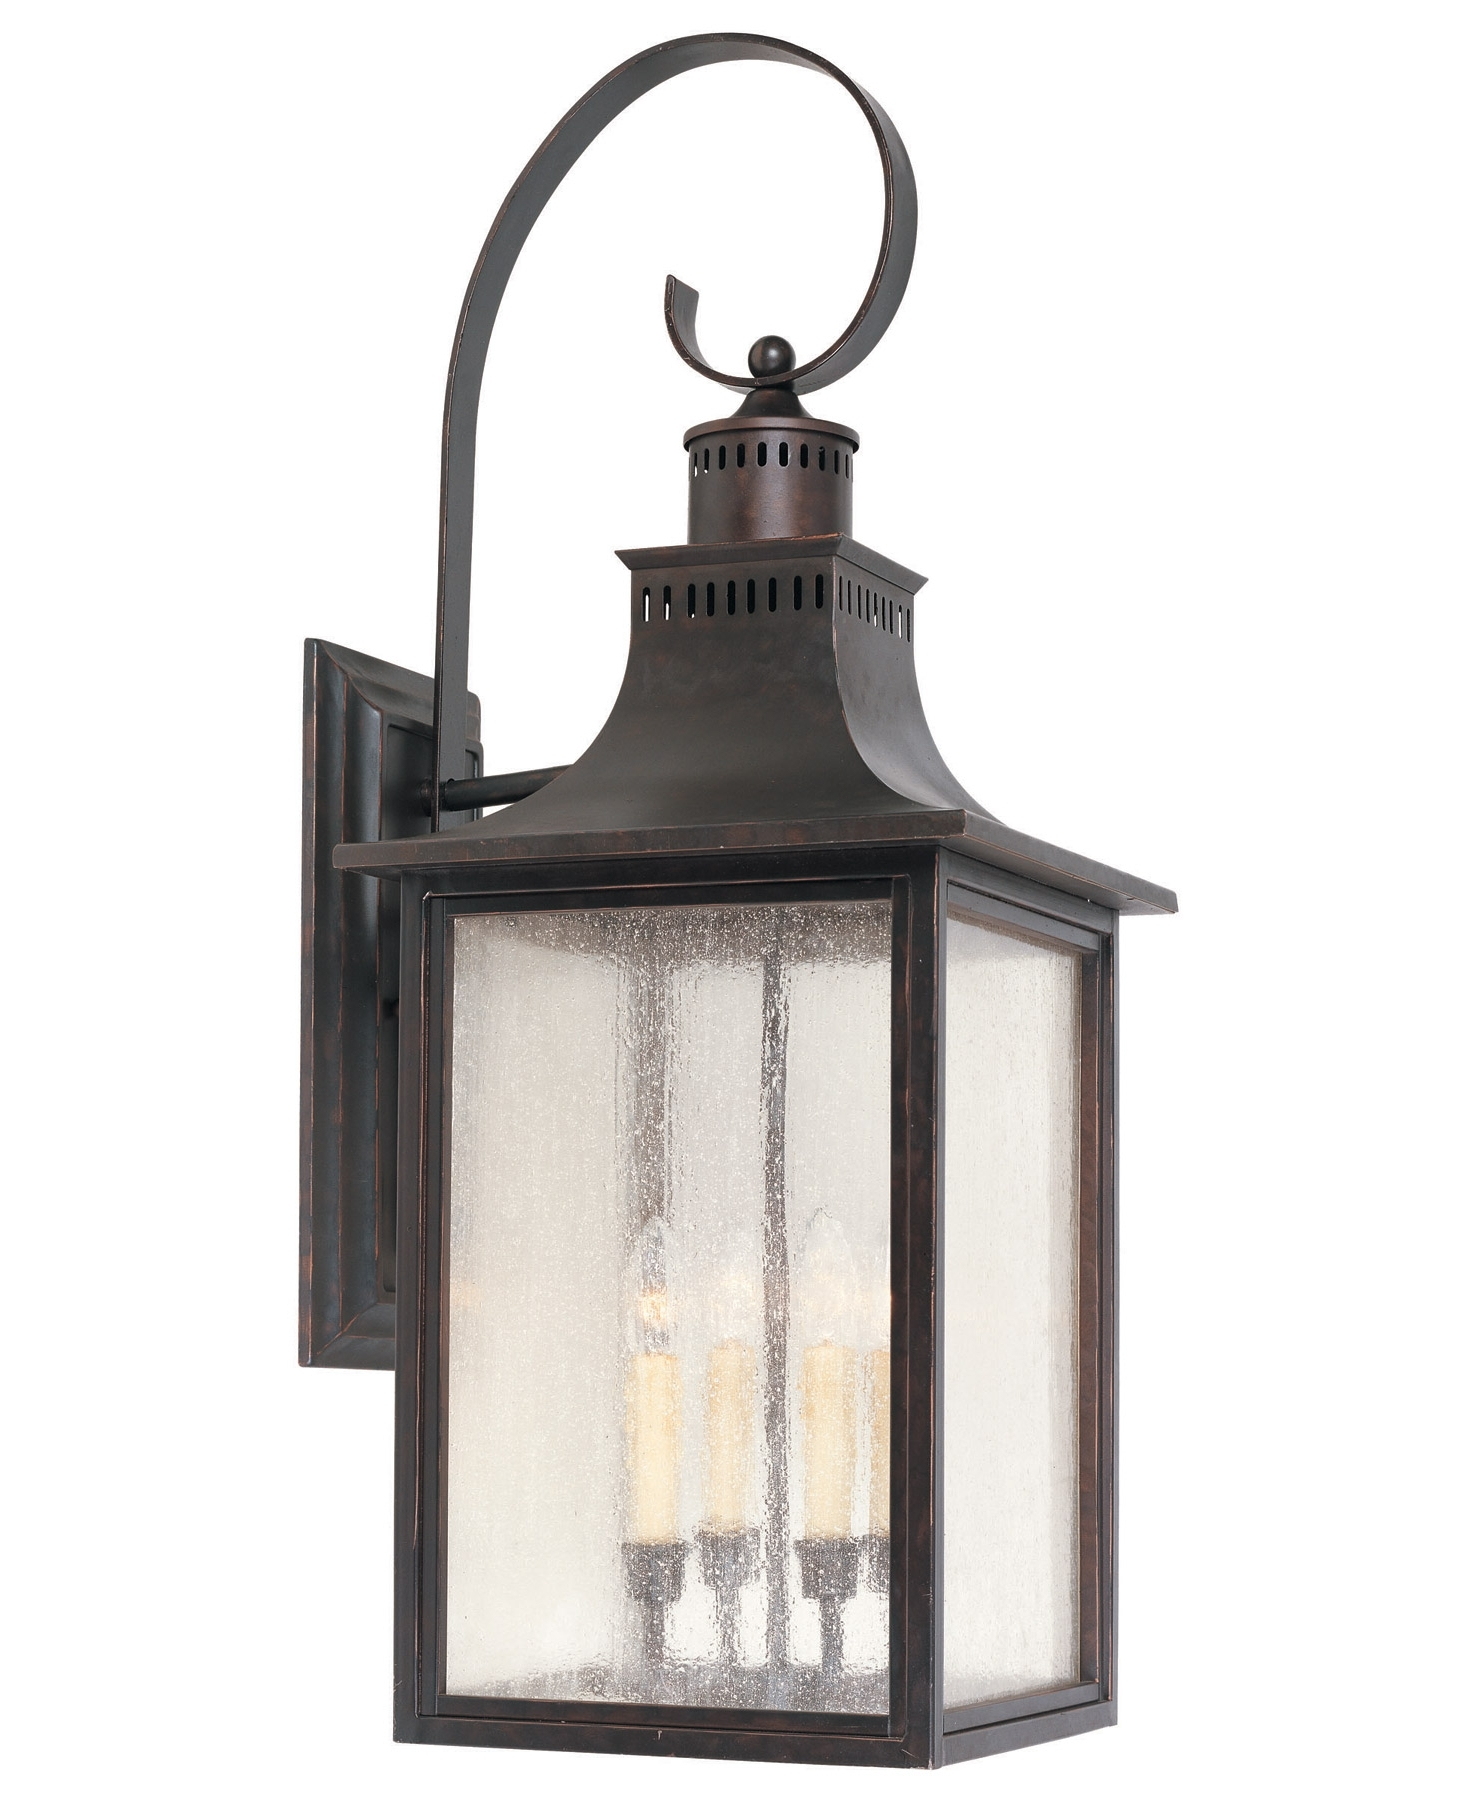 Savoy House 5 257 13 Monte Grande Outdoor Wall Mount Lantern With Regard To Popular Italian Outdoor Lanterns (View 19 of 20)